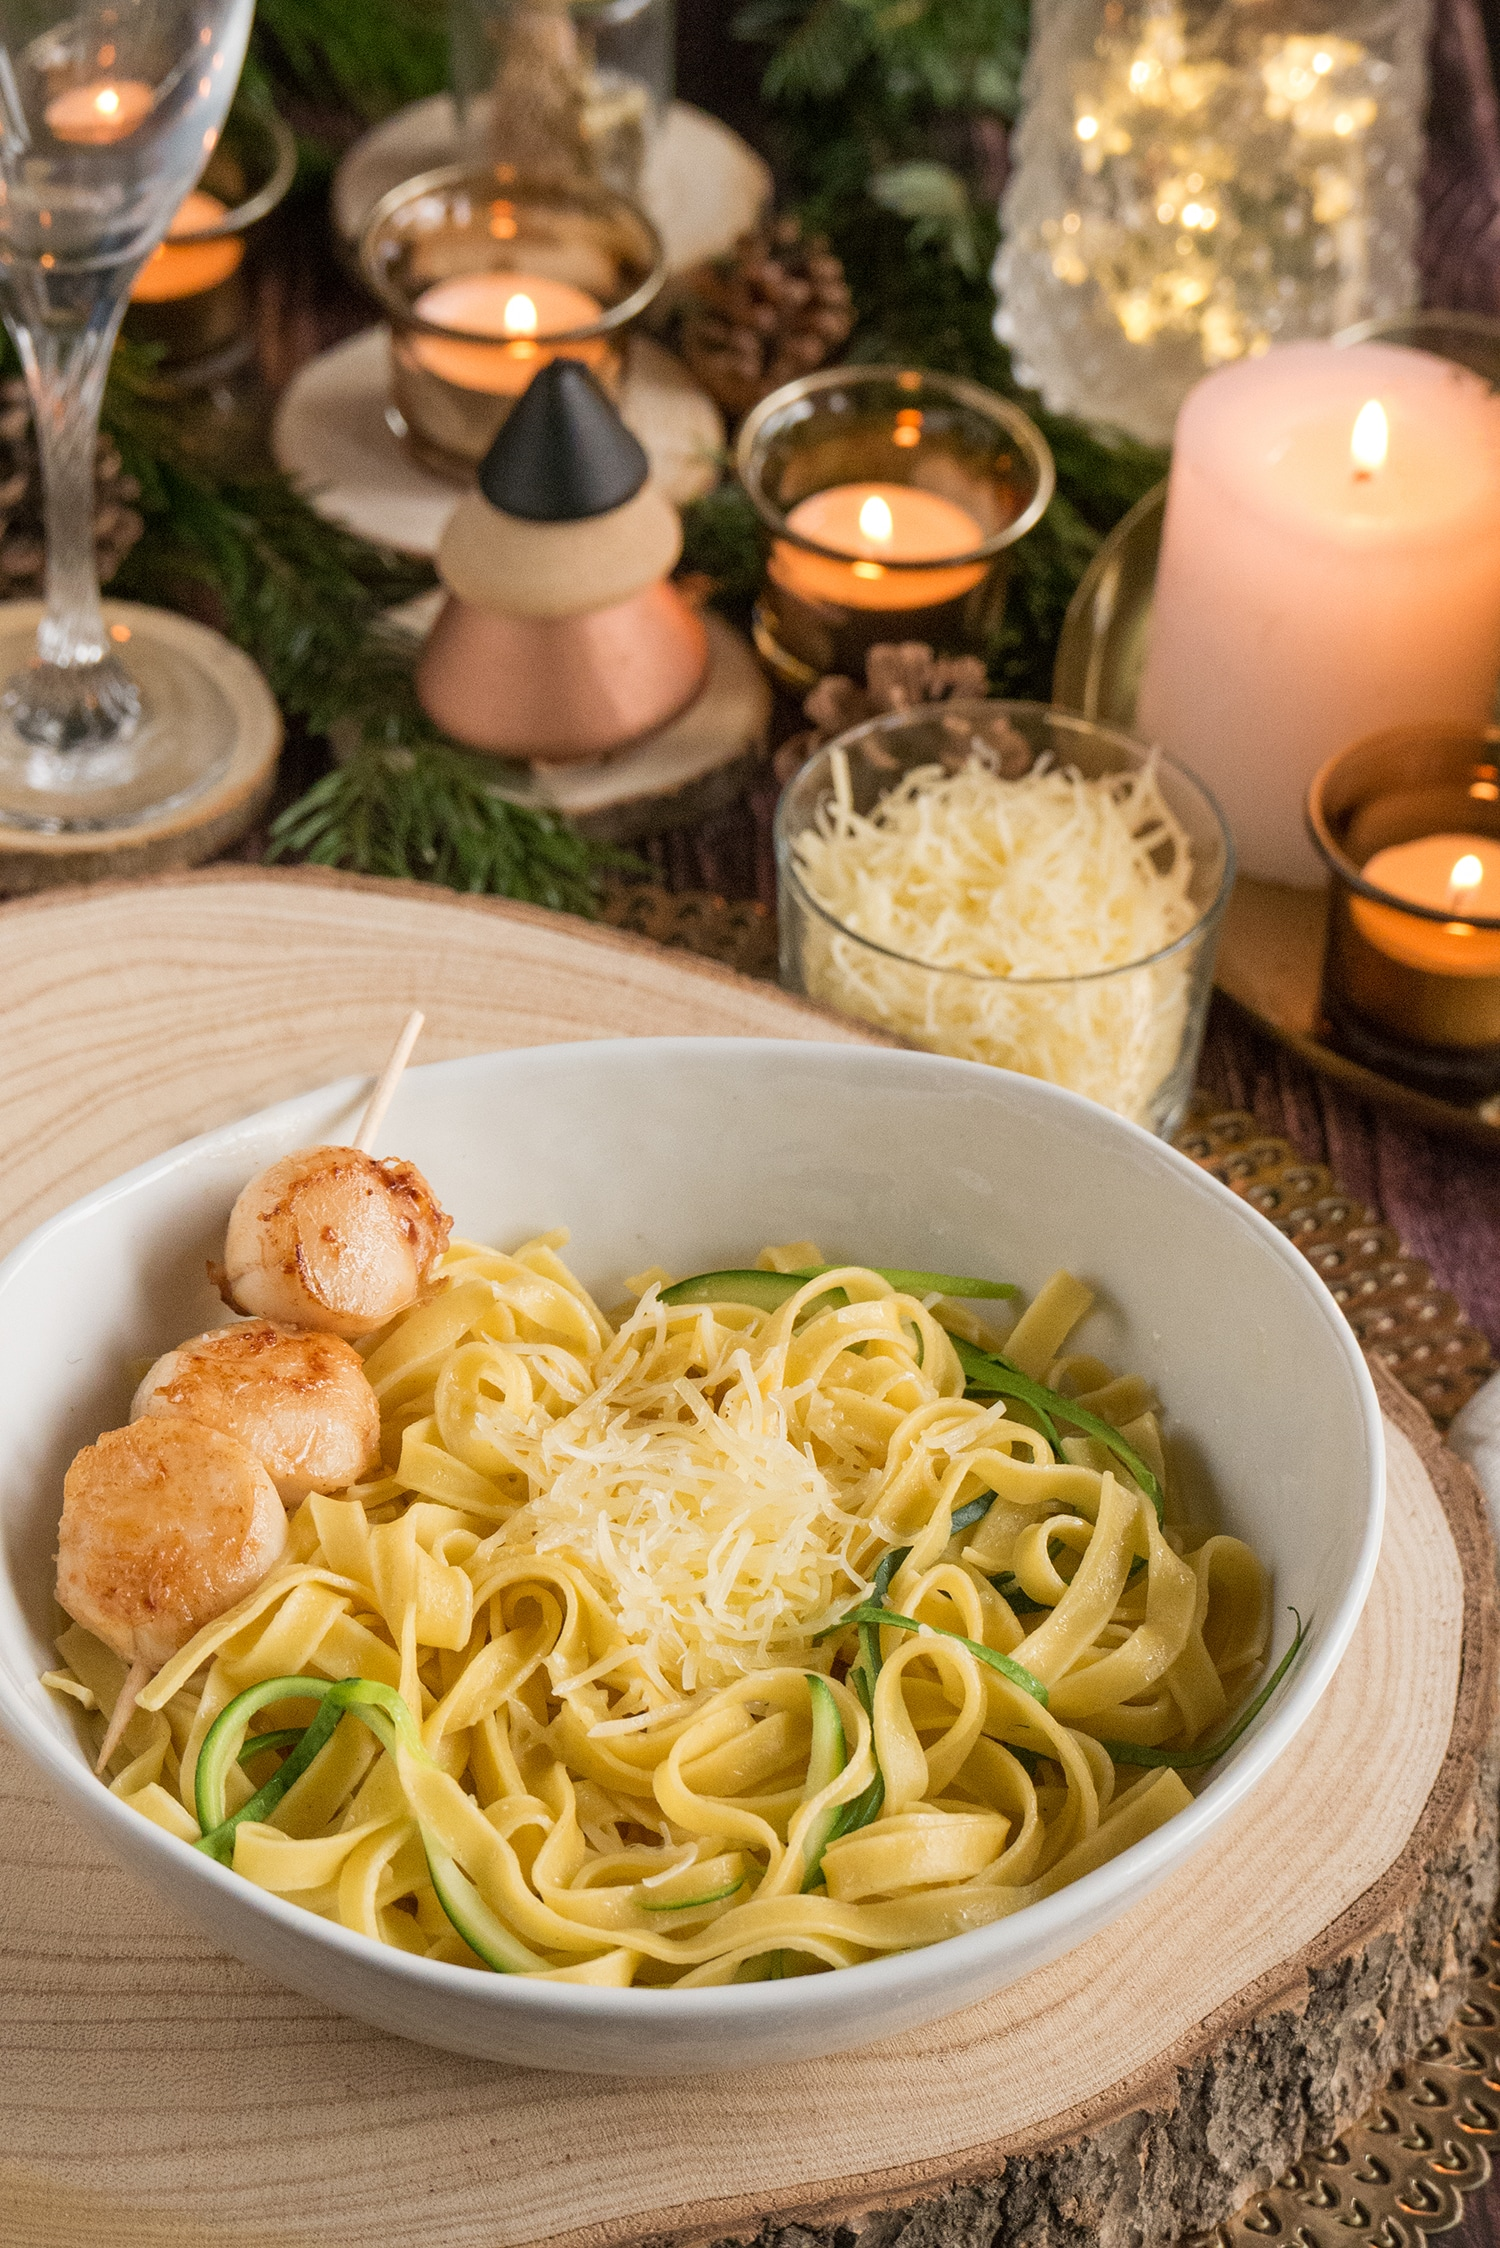 Tagliatelle, courgette ribbons, and seared Saint Jacques scallops